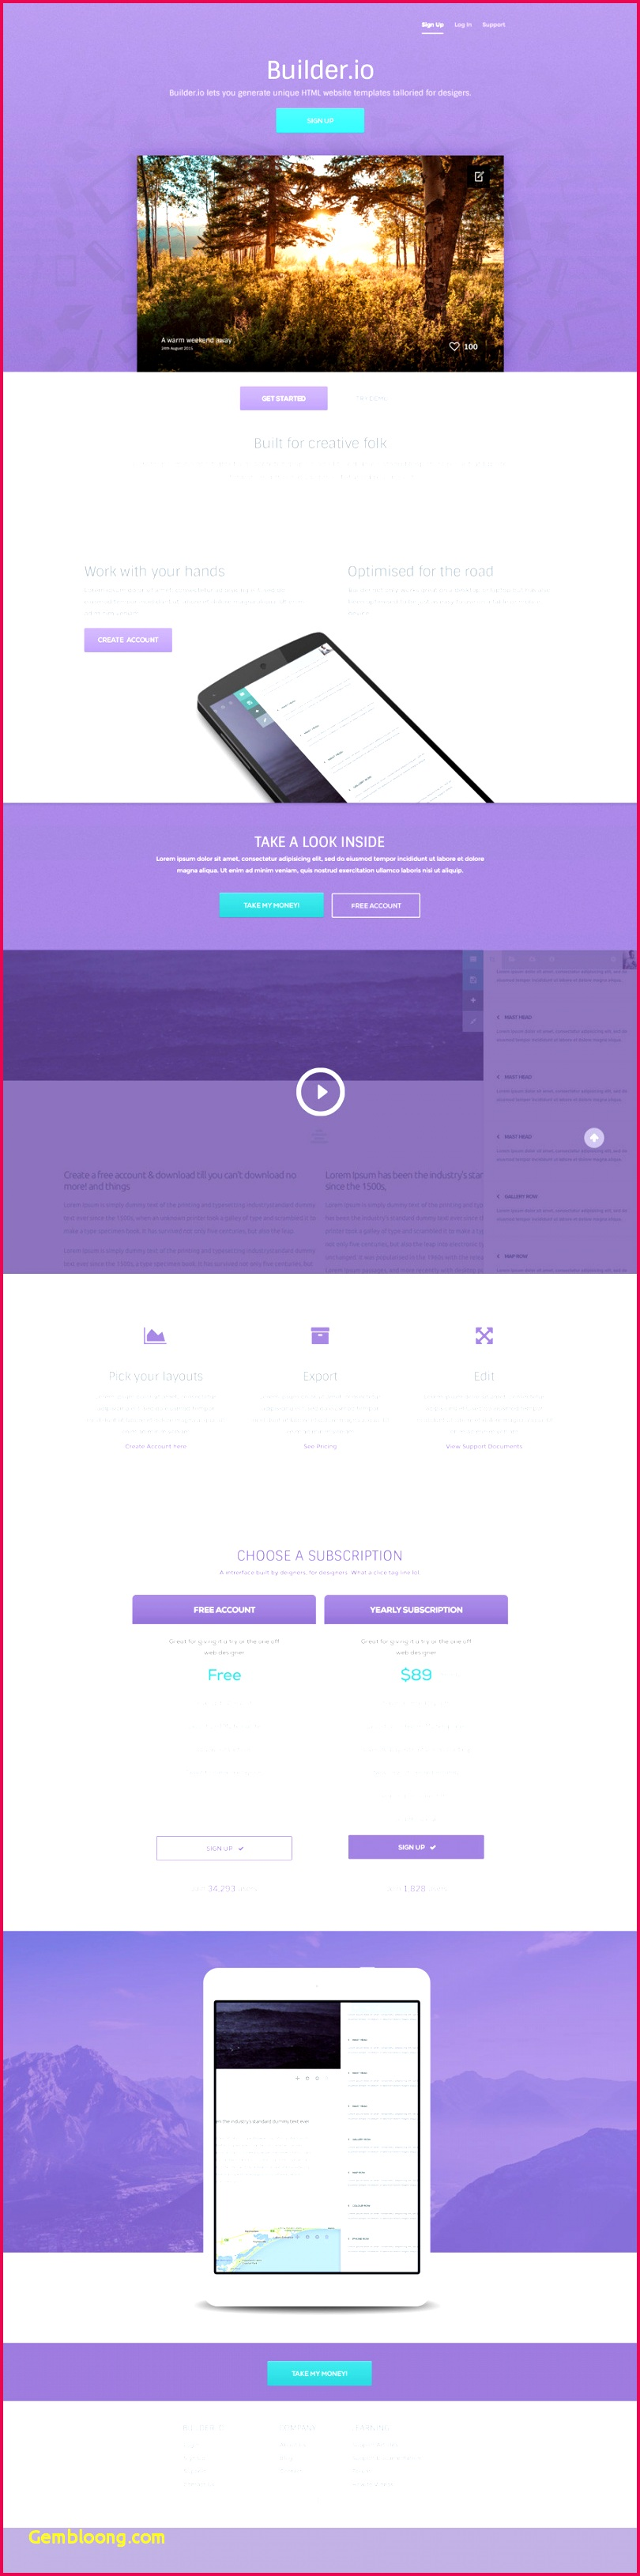 cortenza creative agency psd 0d 0aby spartakvee popular psd website templates of psd website templates